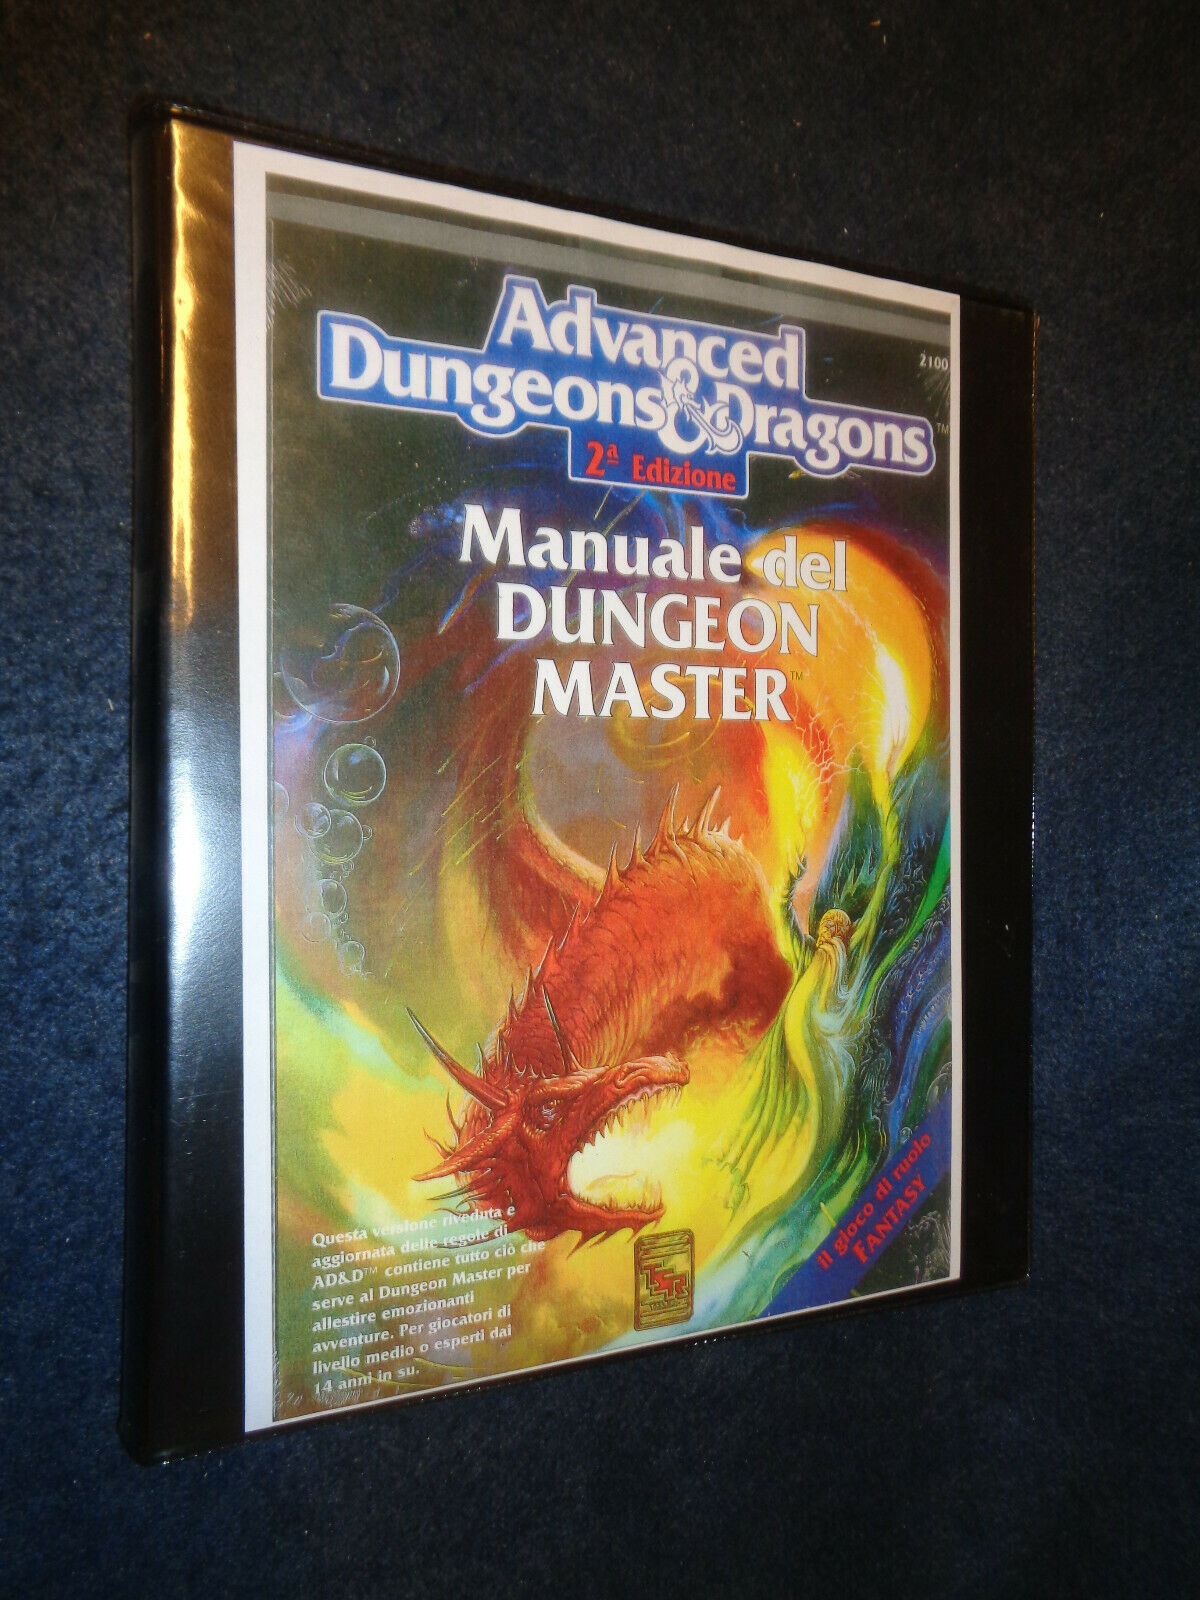 ADVANCED DUNGEONS & DRAGONS MANUALE DEL DUNGEON MASTER DELUXE 2100 RARO-O11-FL